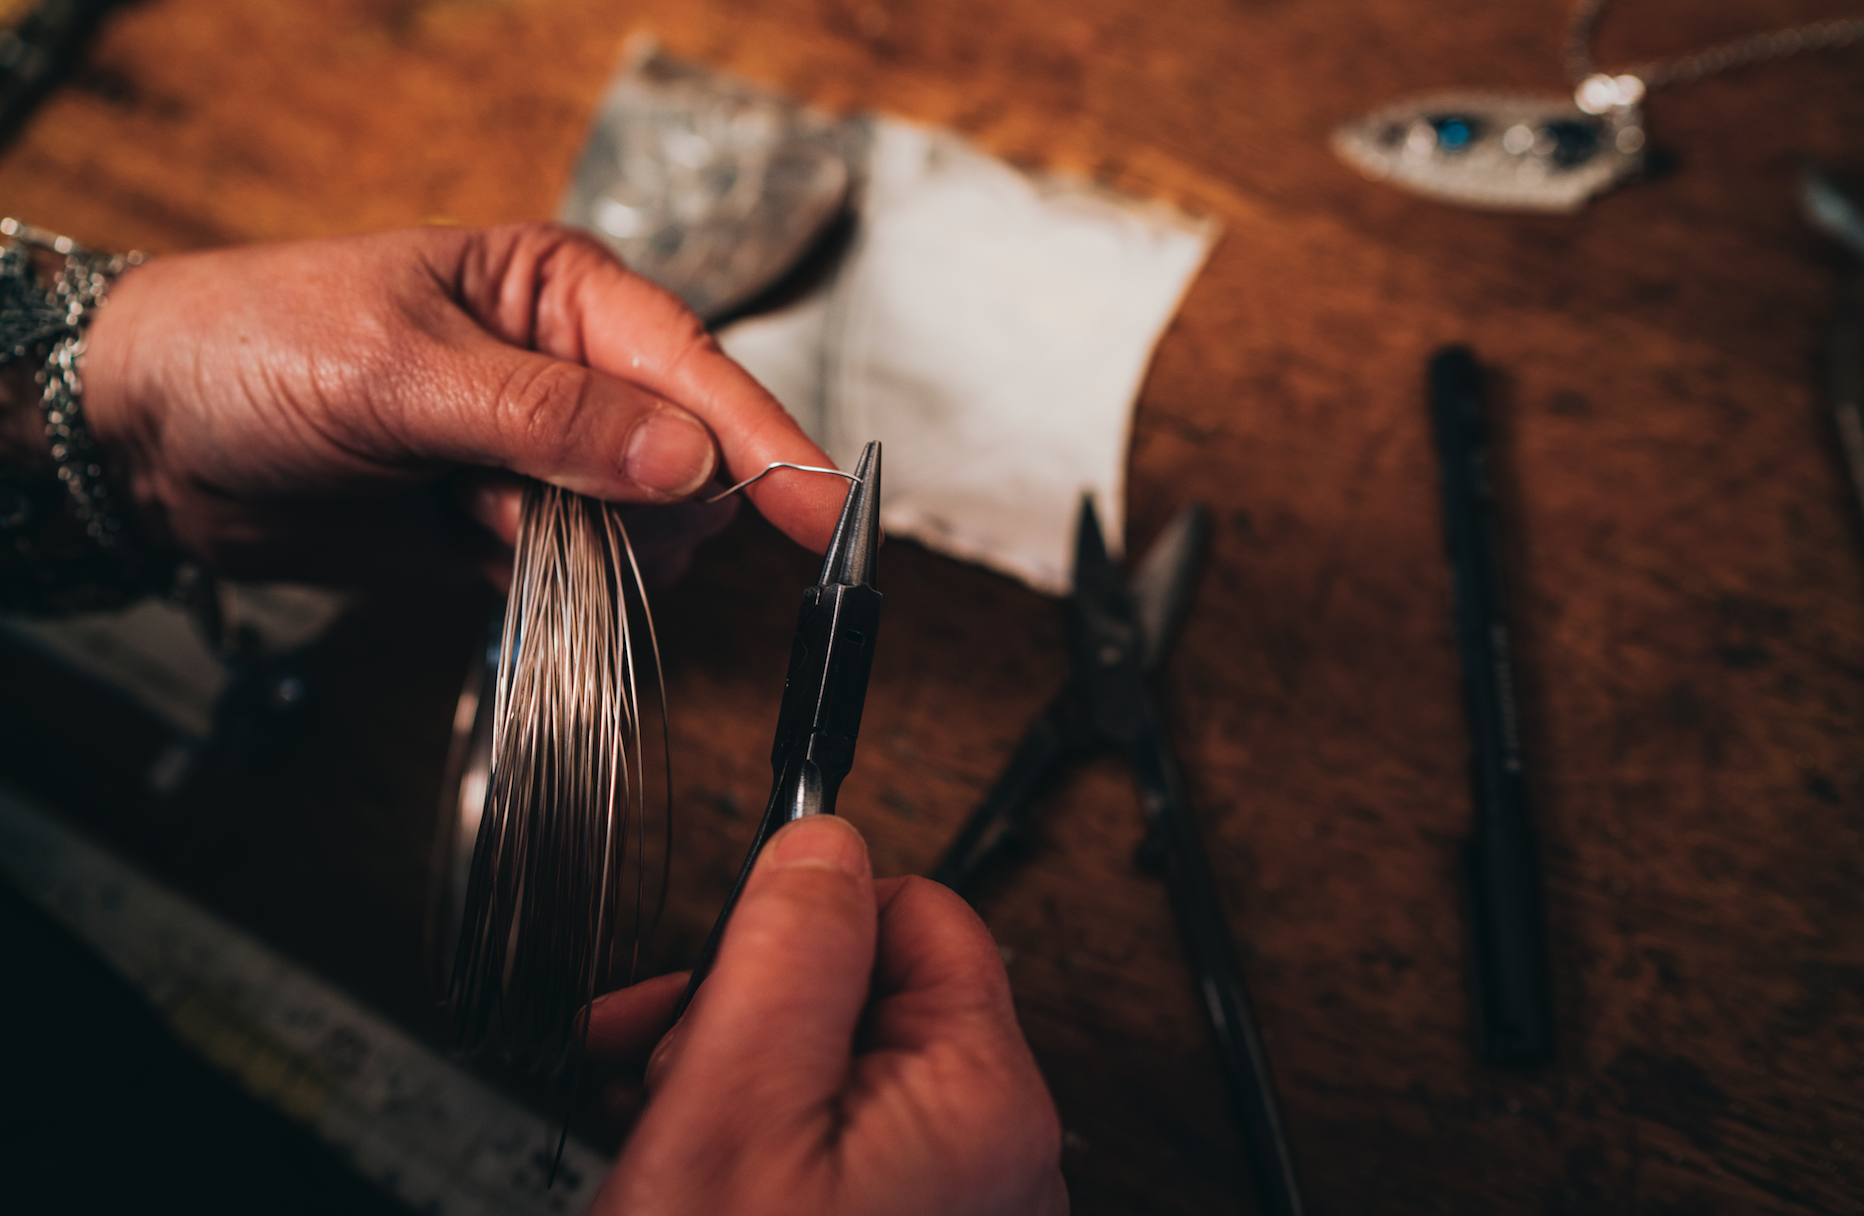 The making of the muse collection in the studio.